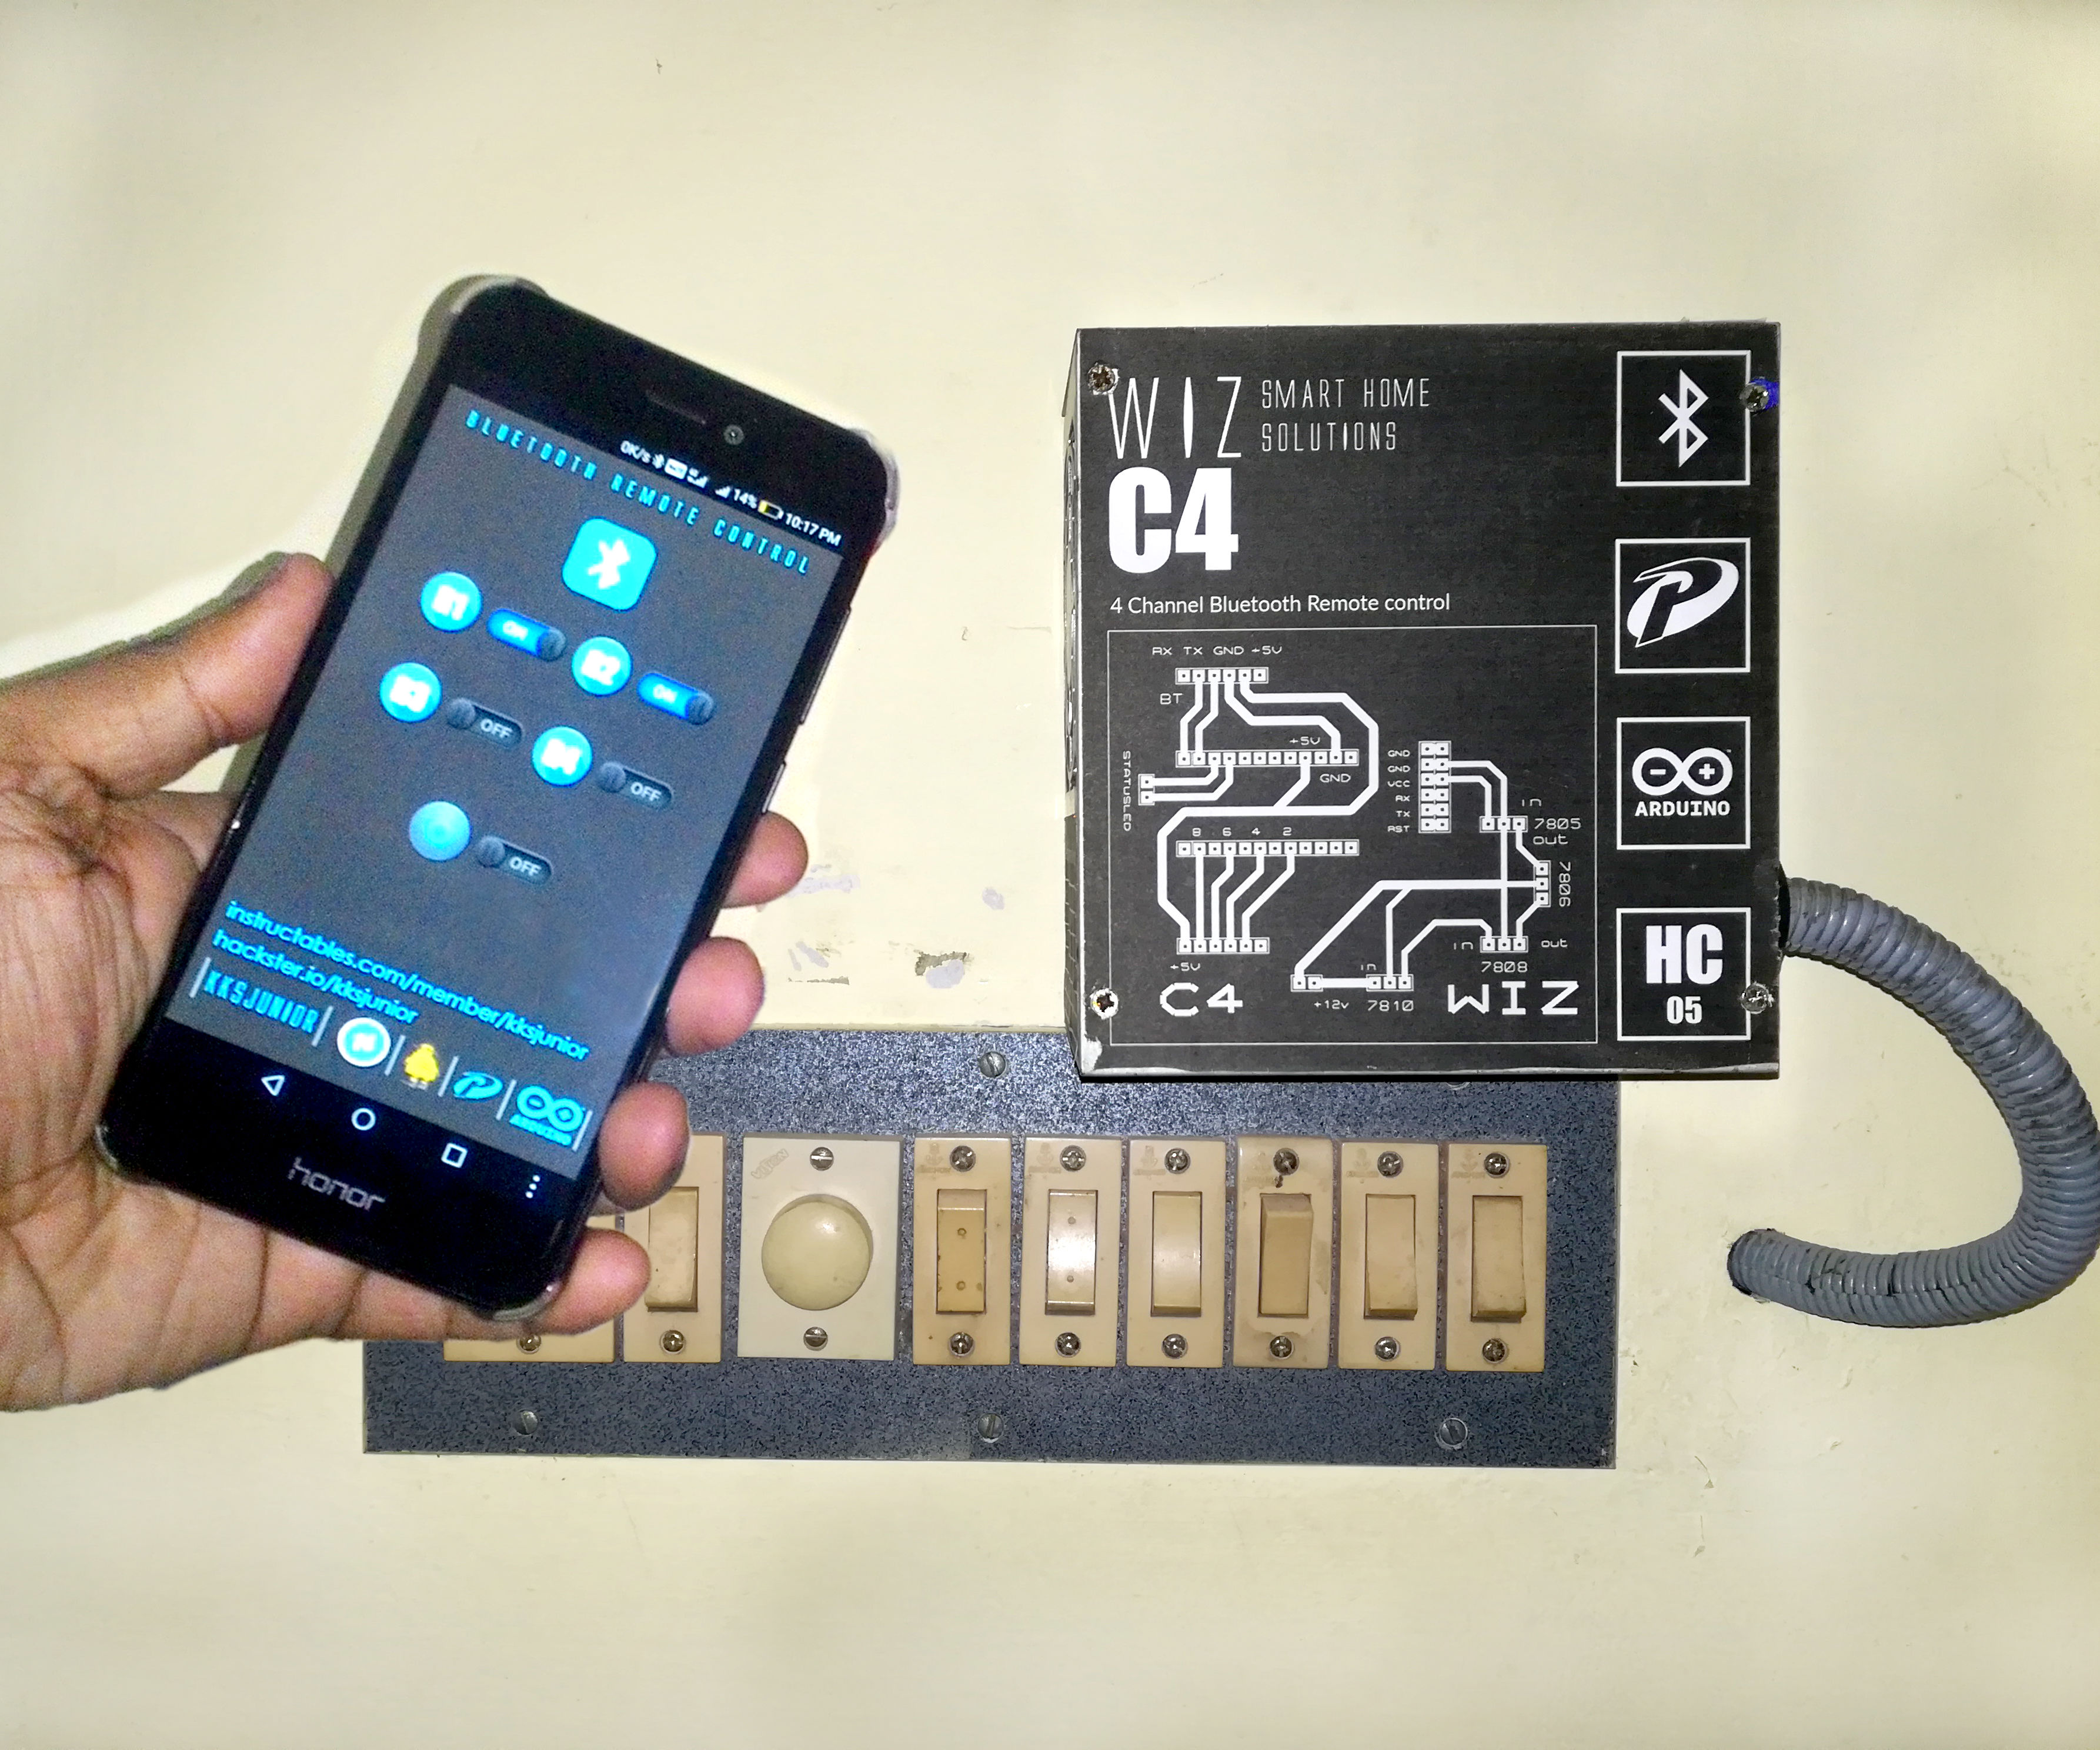 Simplest Home Automation Using Bluetooth, Android Smartphone